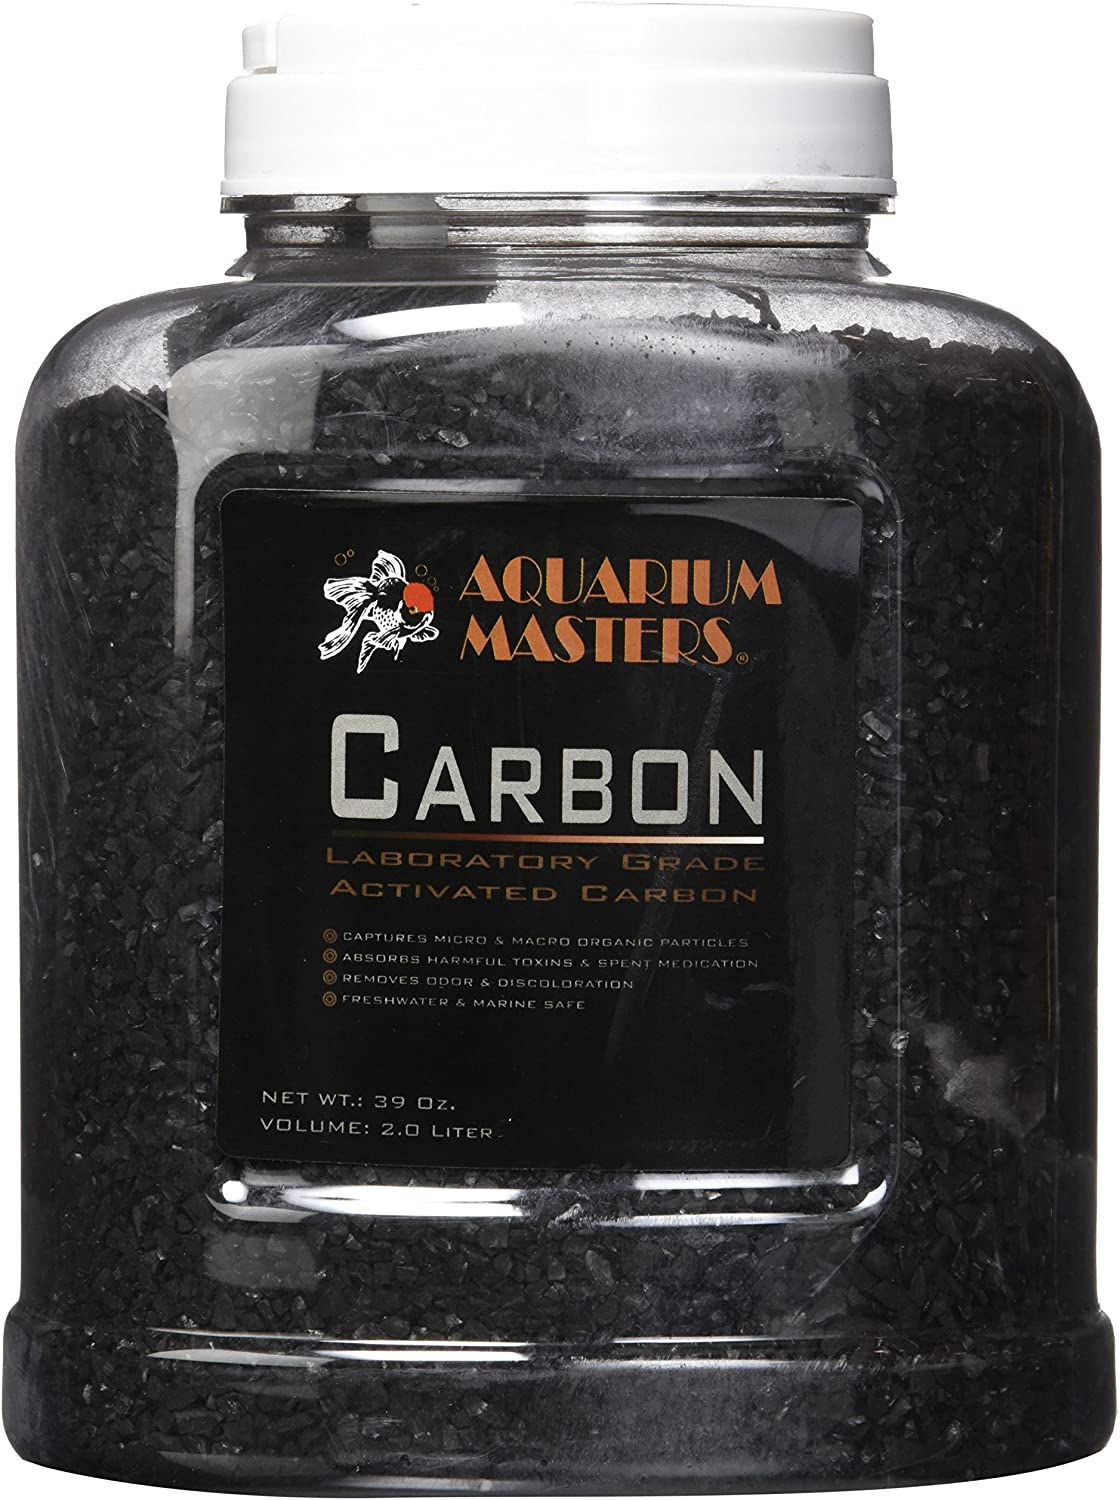 Encompass All 39 Ounce Premium Laboratory Grade Super Activated Carbon with Free Media Bag Inside - AM Brand